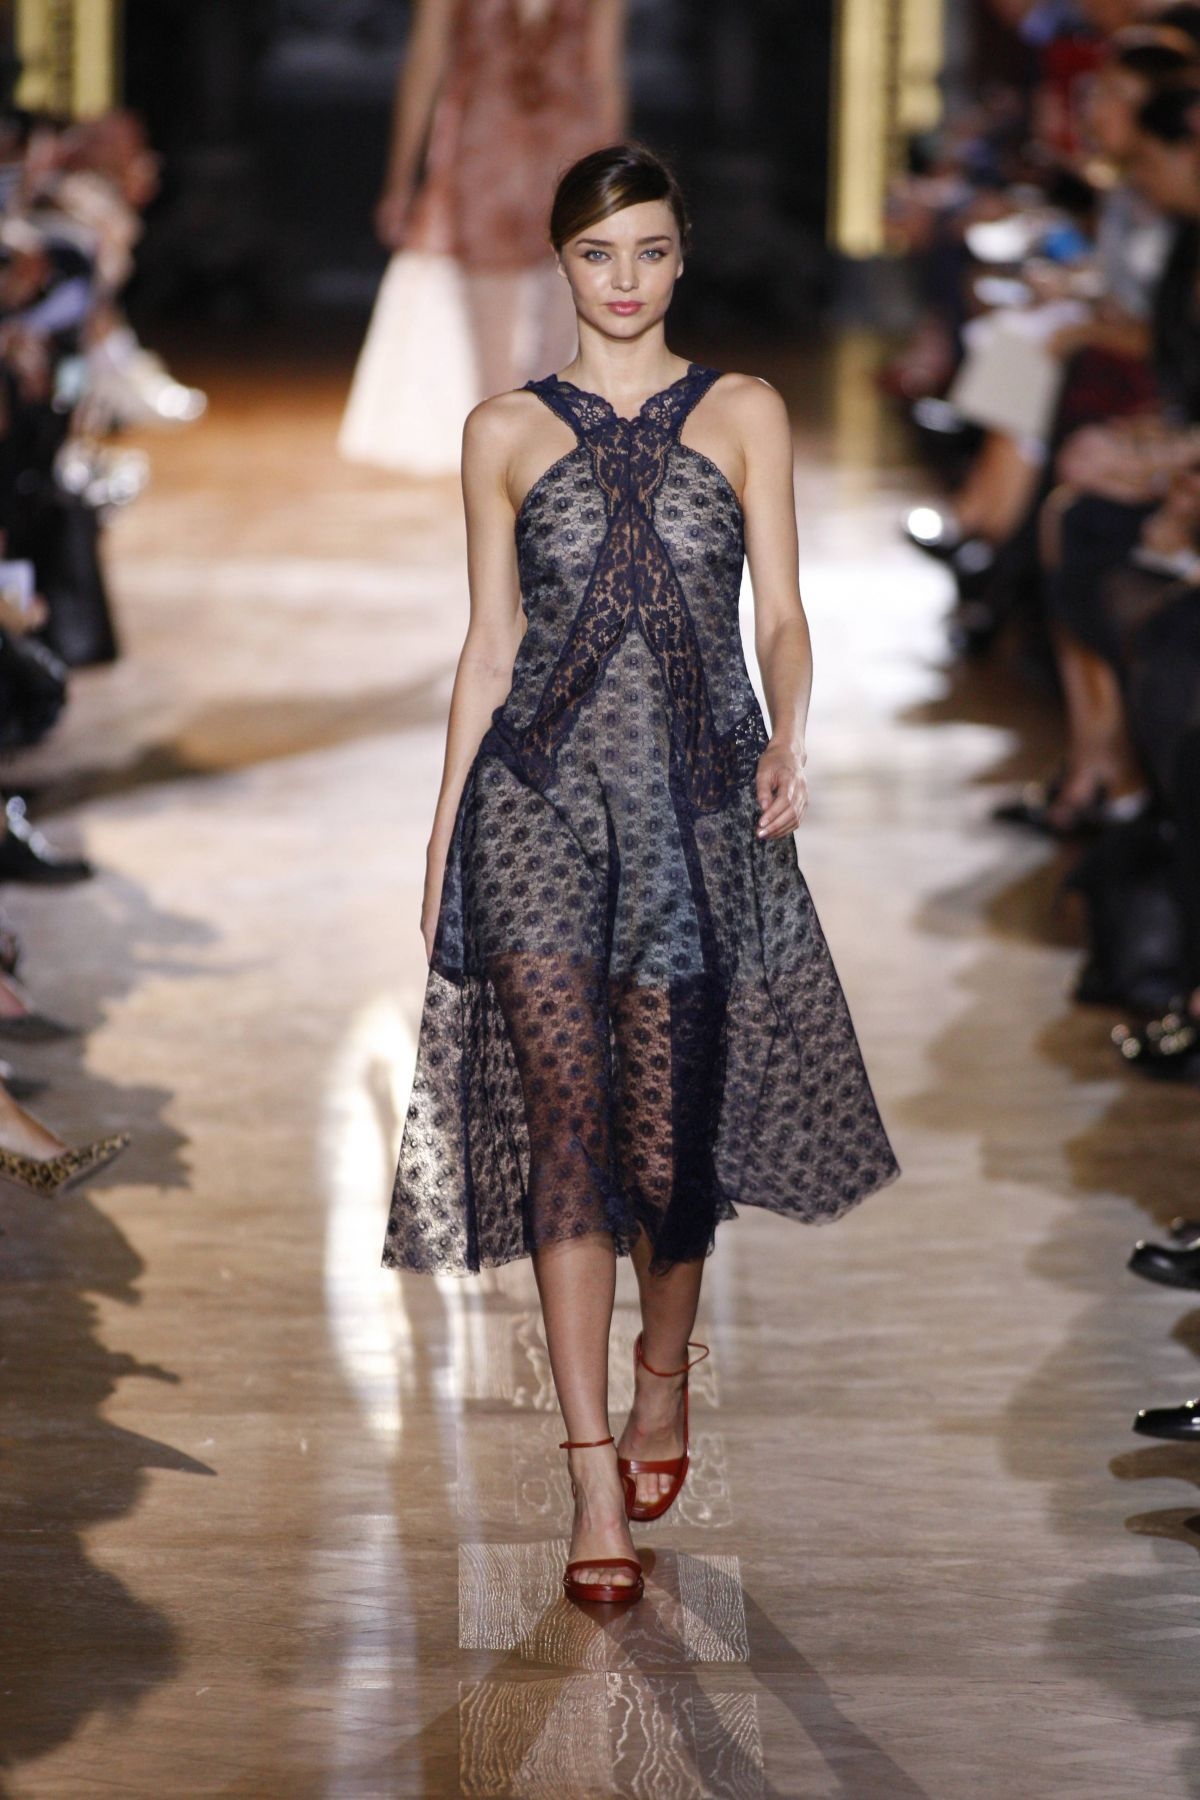 Miranda kerr on the runway at stella mccartney fashion for Runway fashion show video